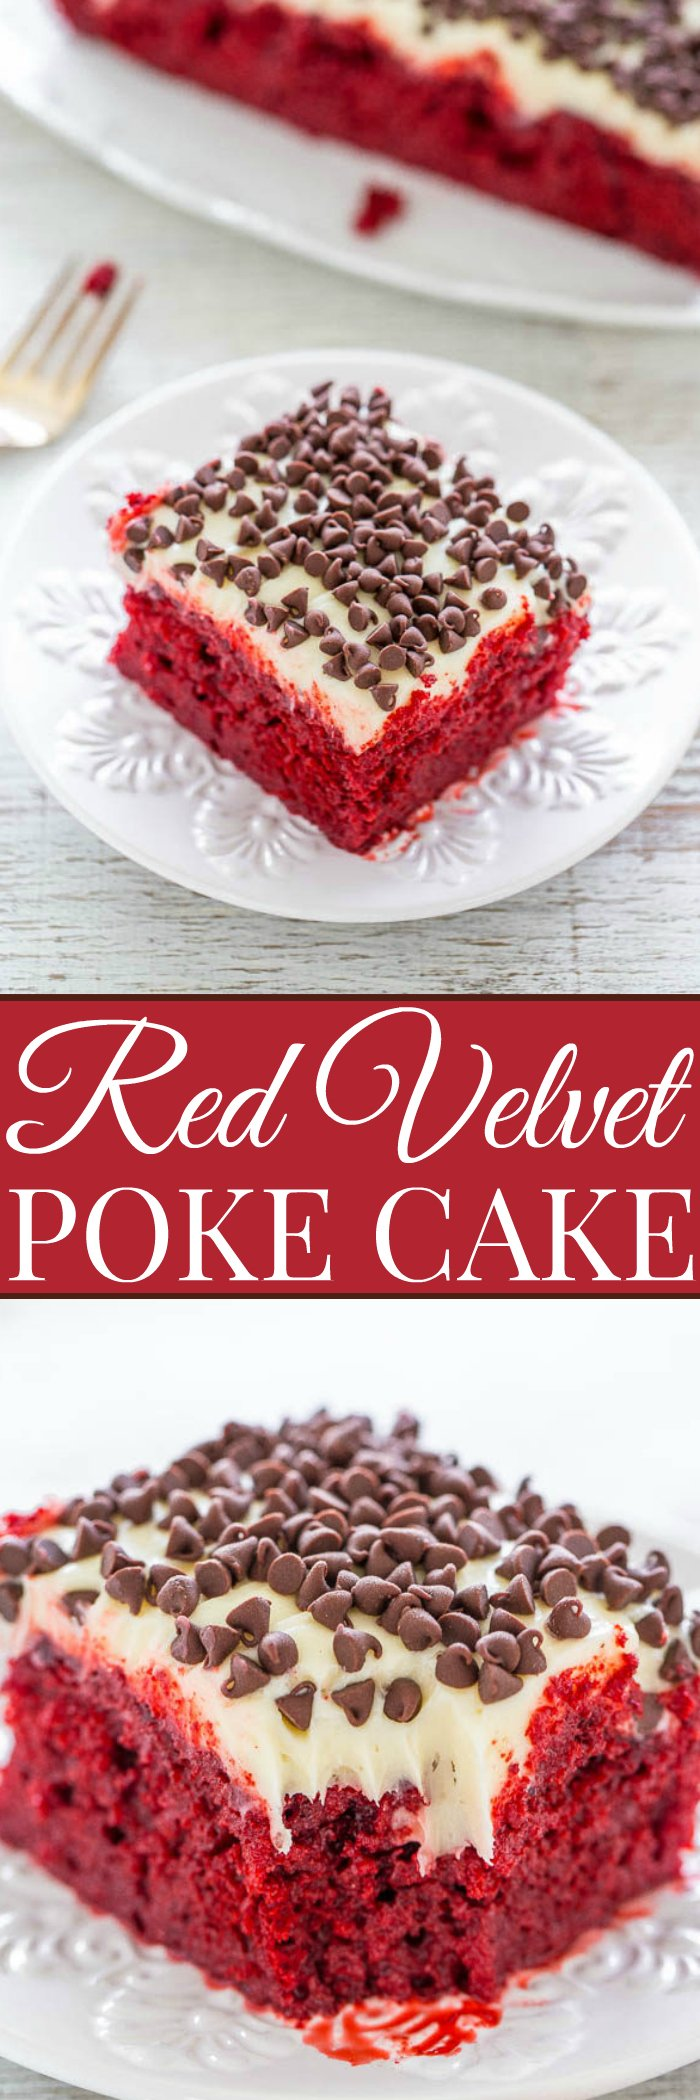 How Do You Make Red Velvet Cake Moist